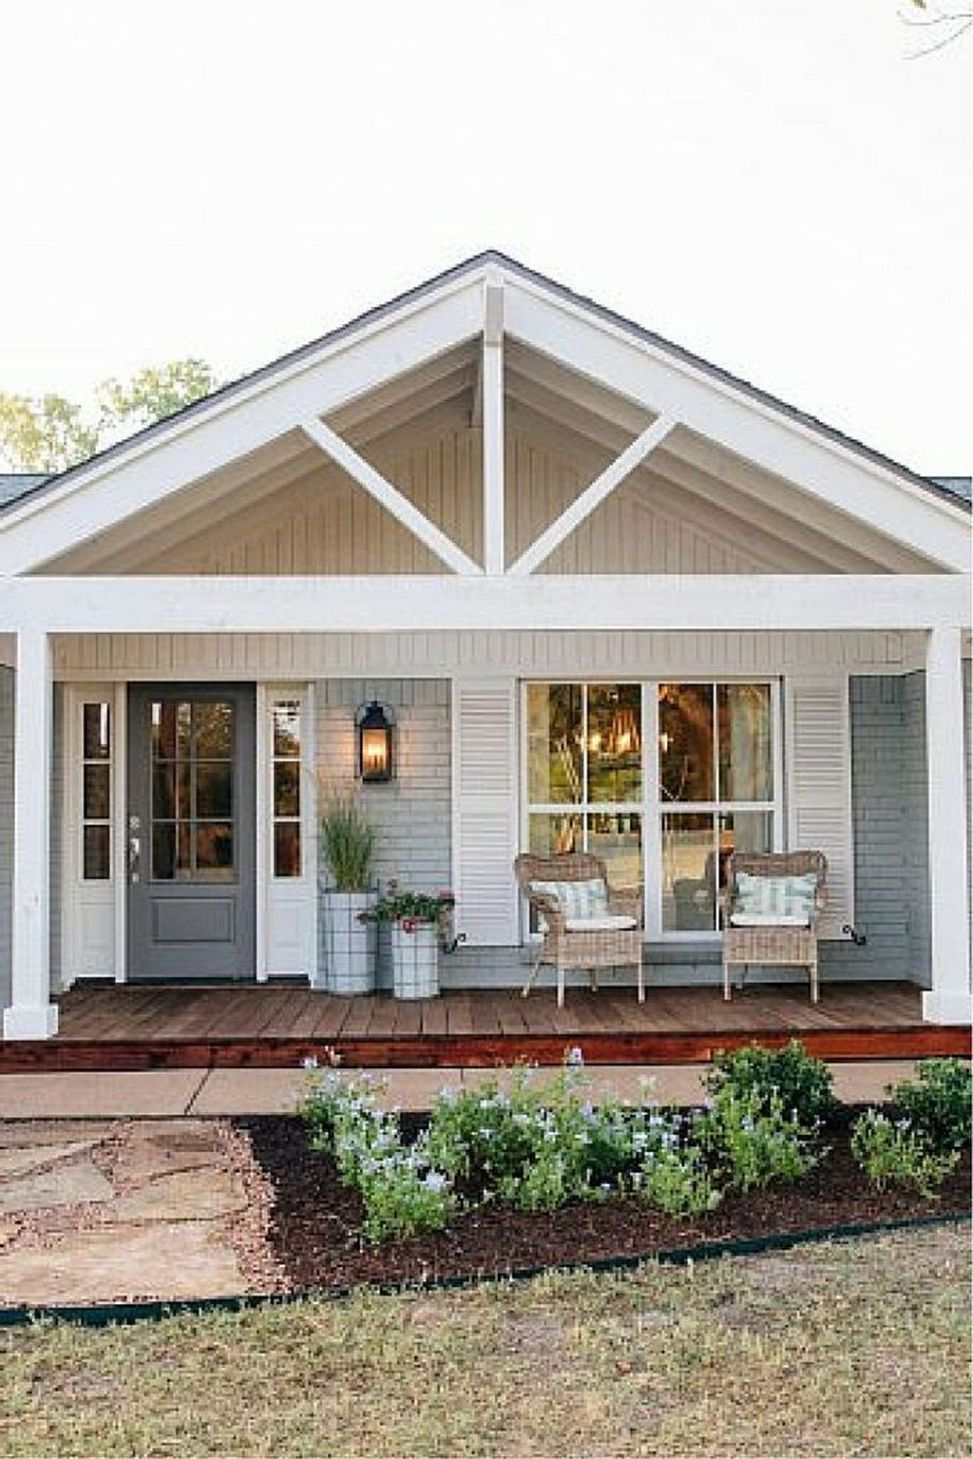 Incredible Tiny House Cottage Front Porch (22)   Architecture   Home on country master bathroom designs, church front designs, country living room designs, country bedroom designs, stone house front designs, country kitchen designs,